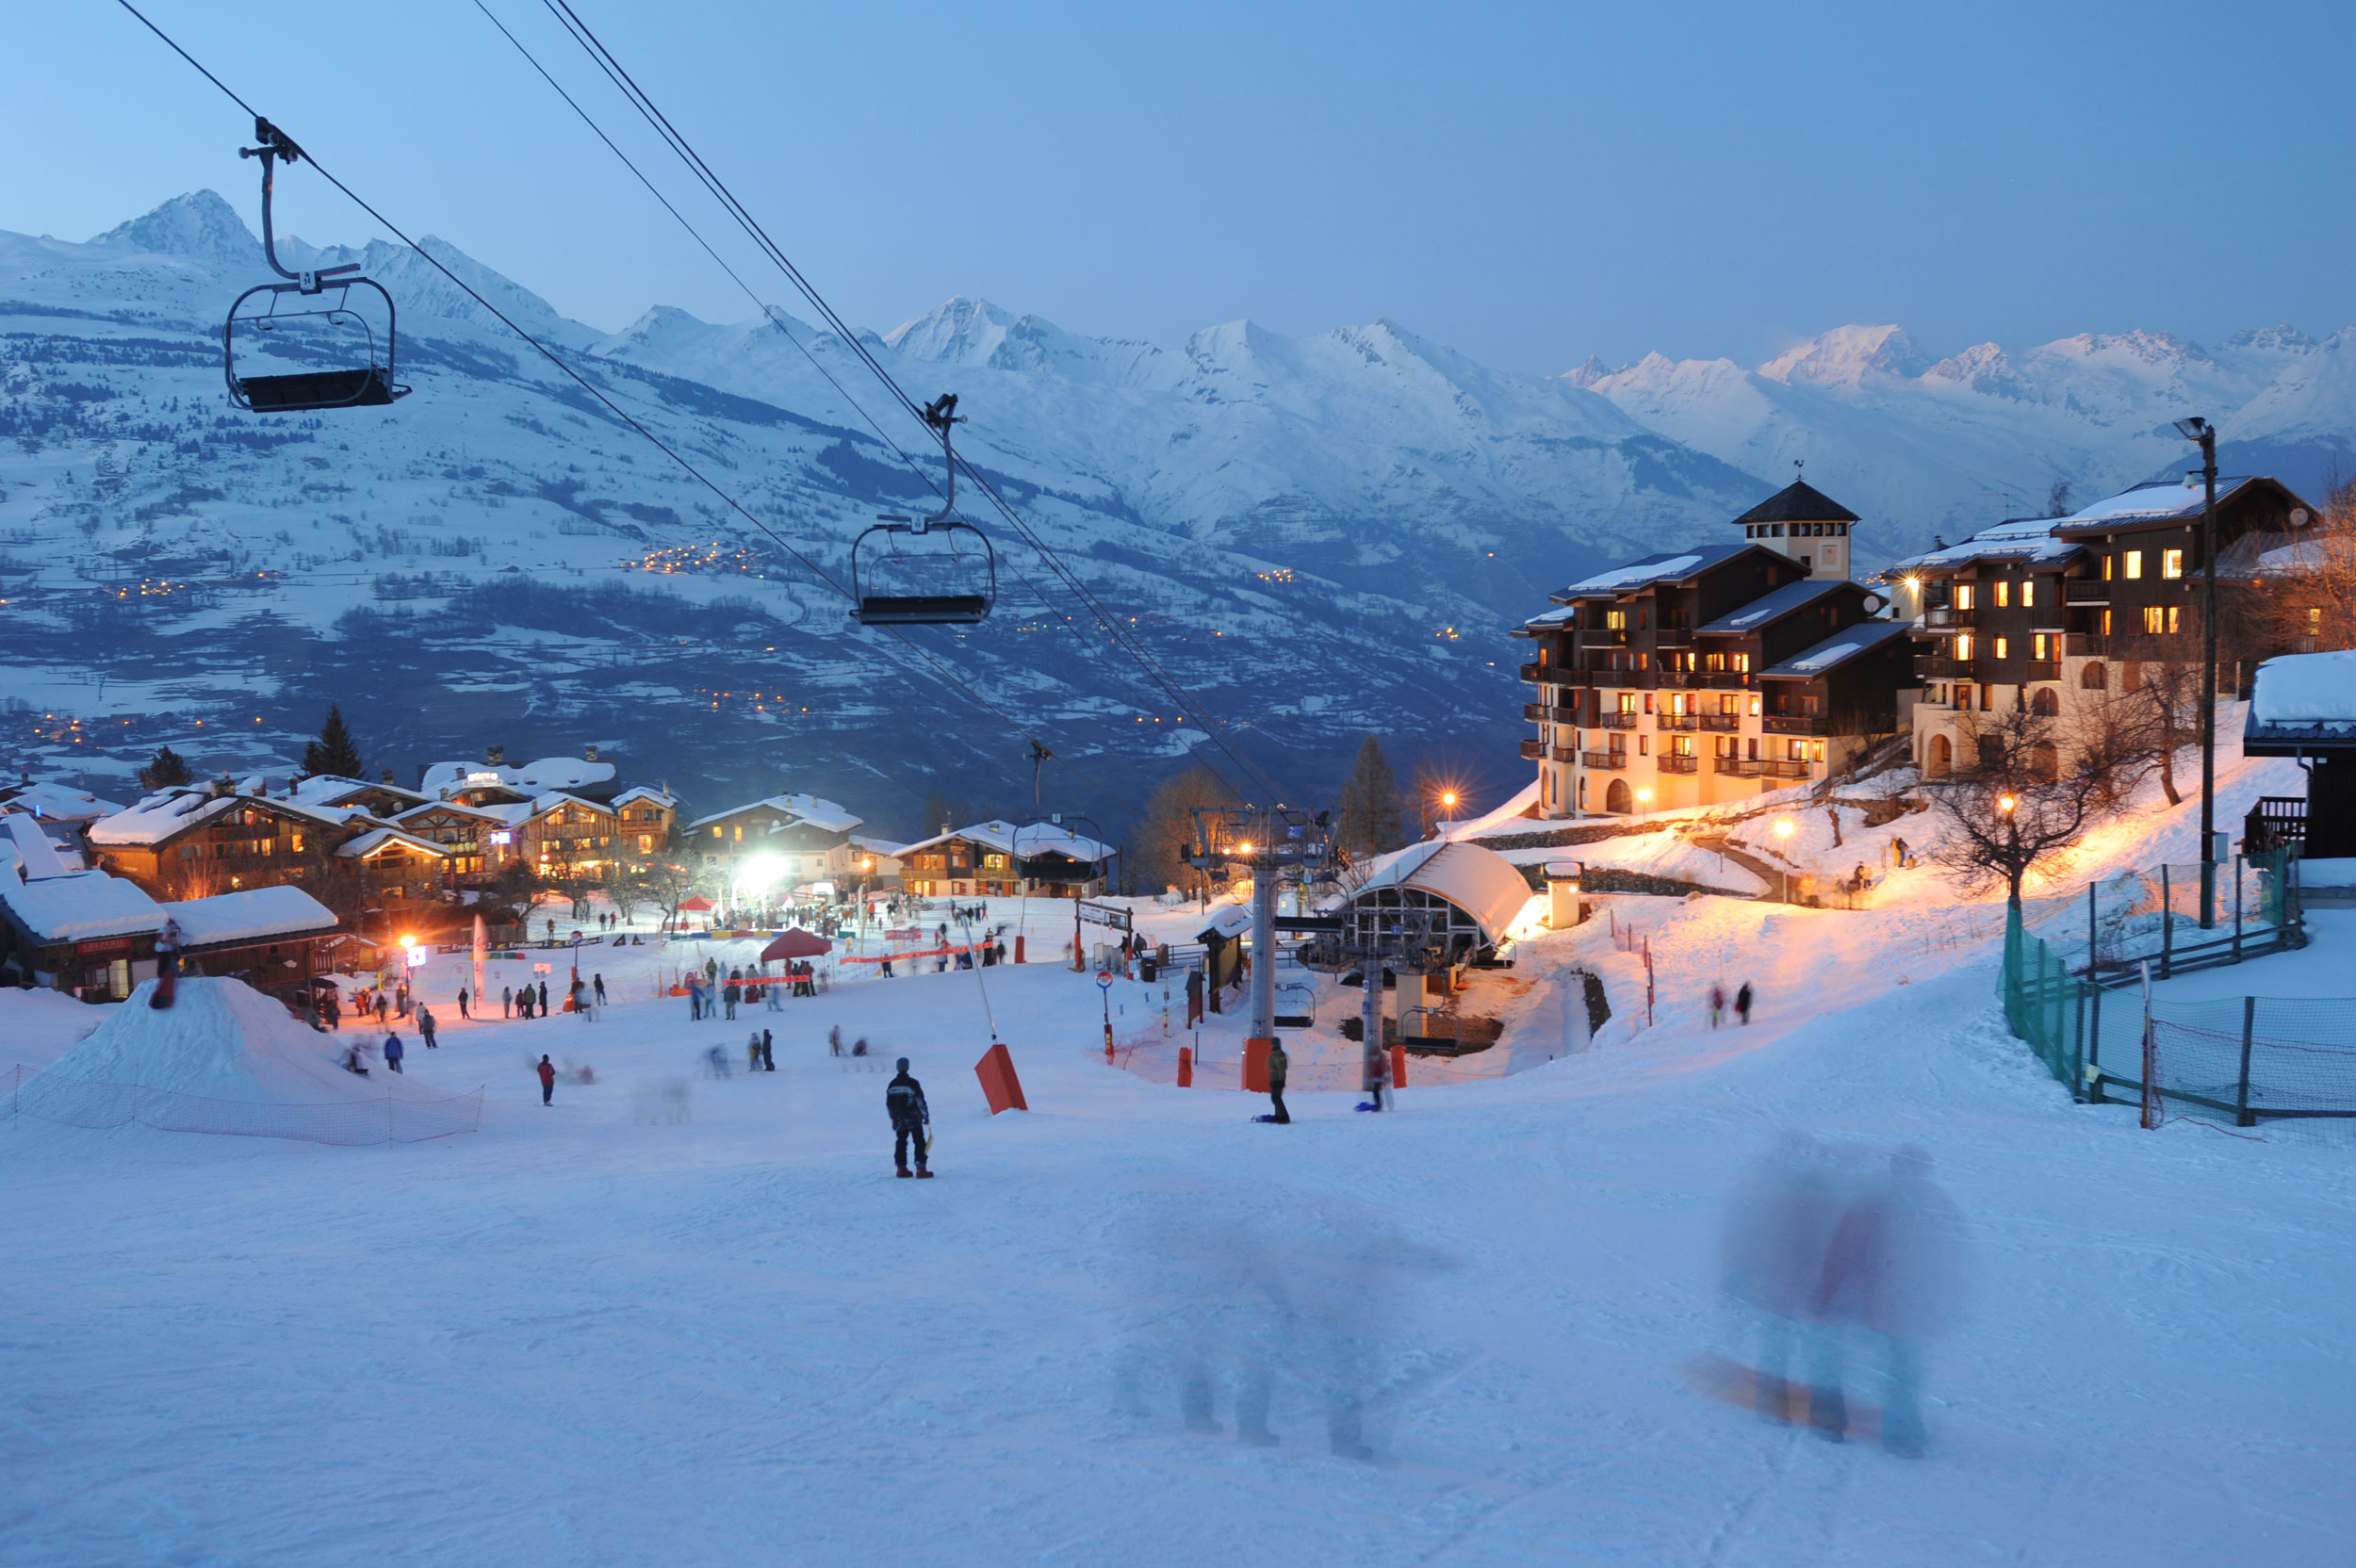 Montchavin Ski Village & Slopes